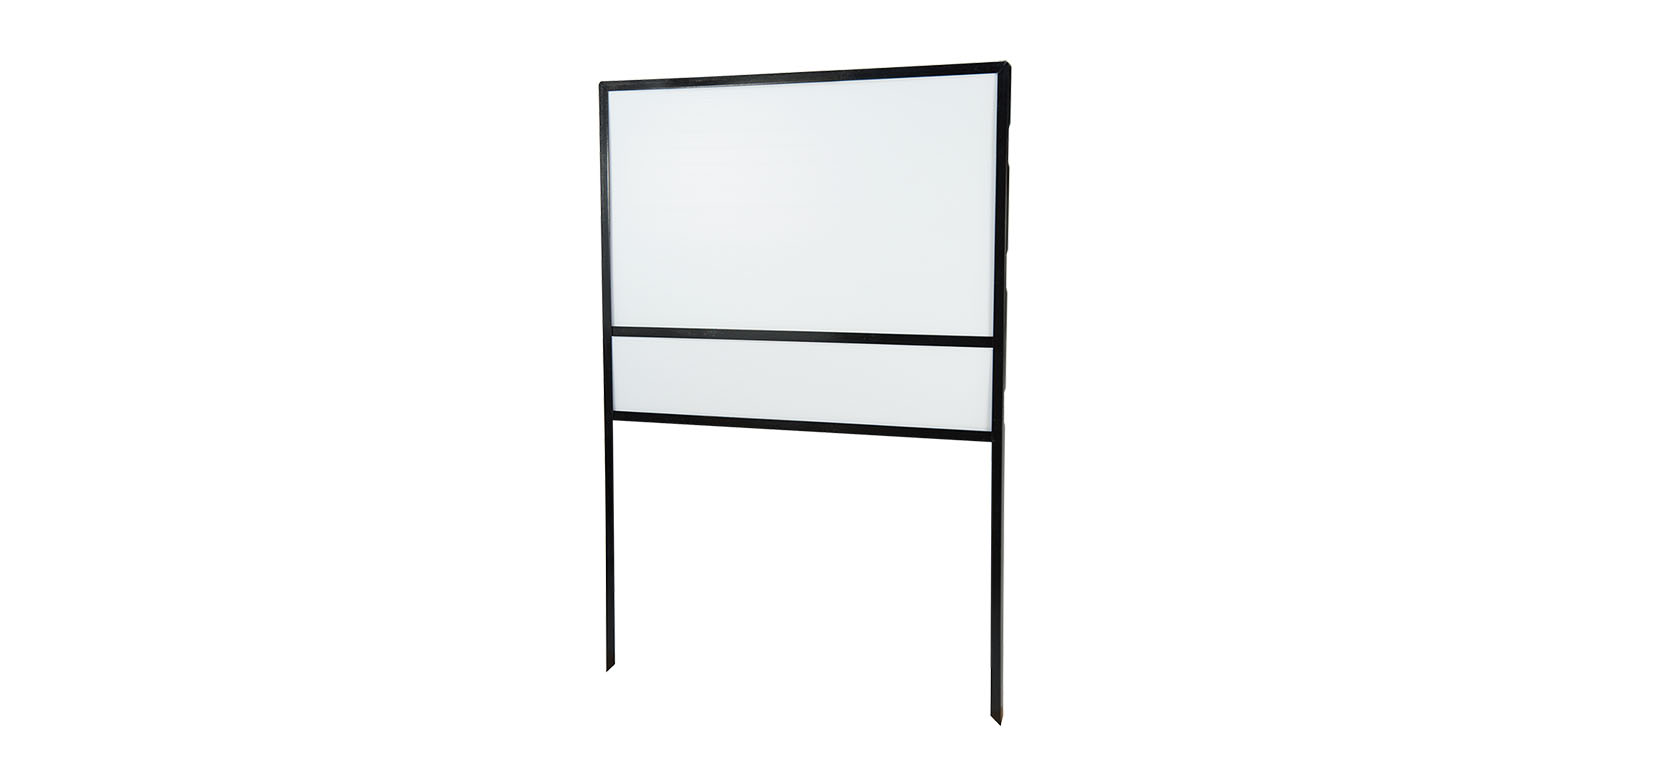 Metal Frame with Blank Panel